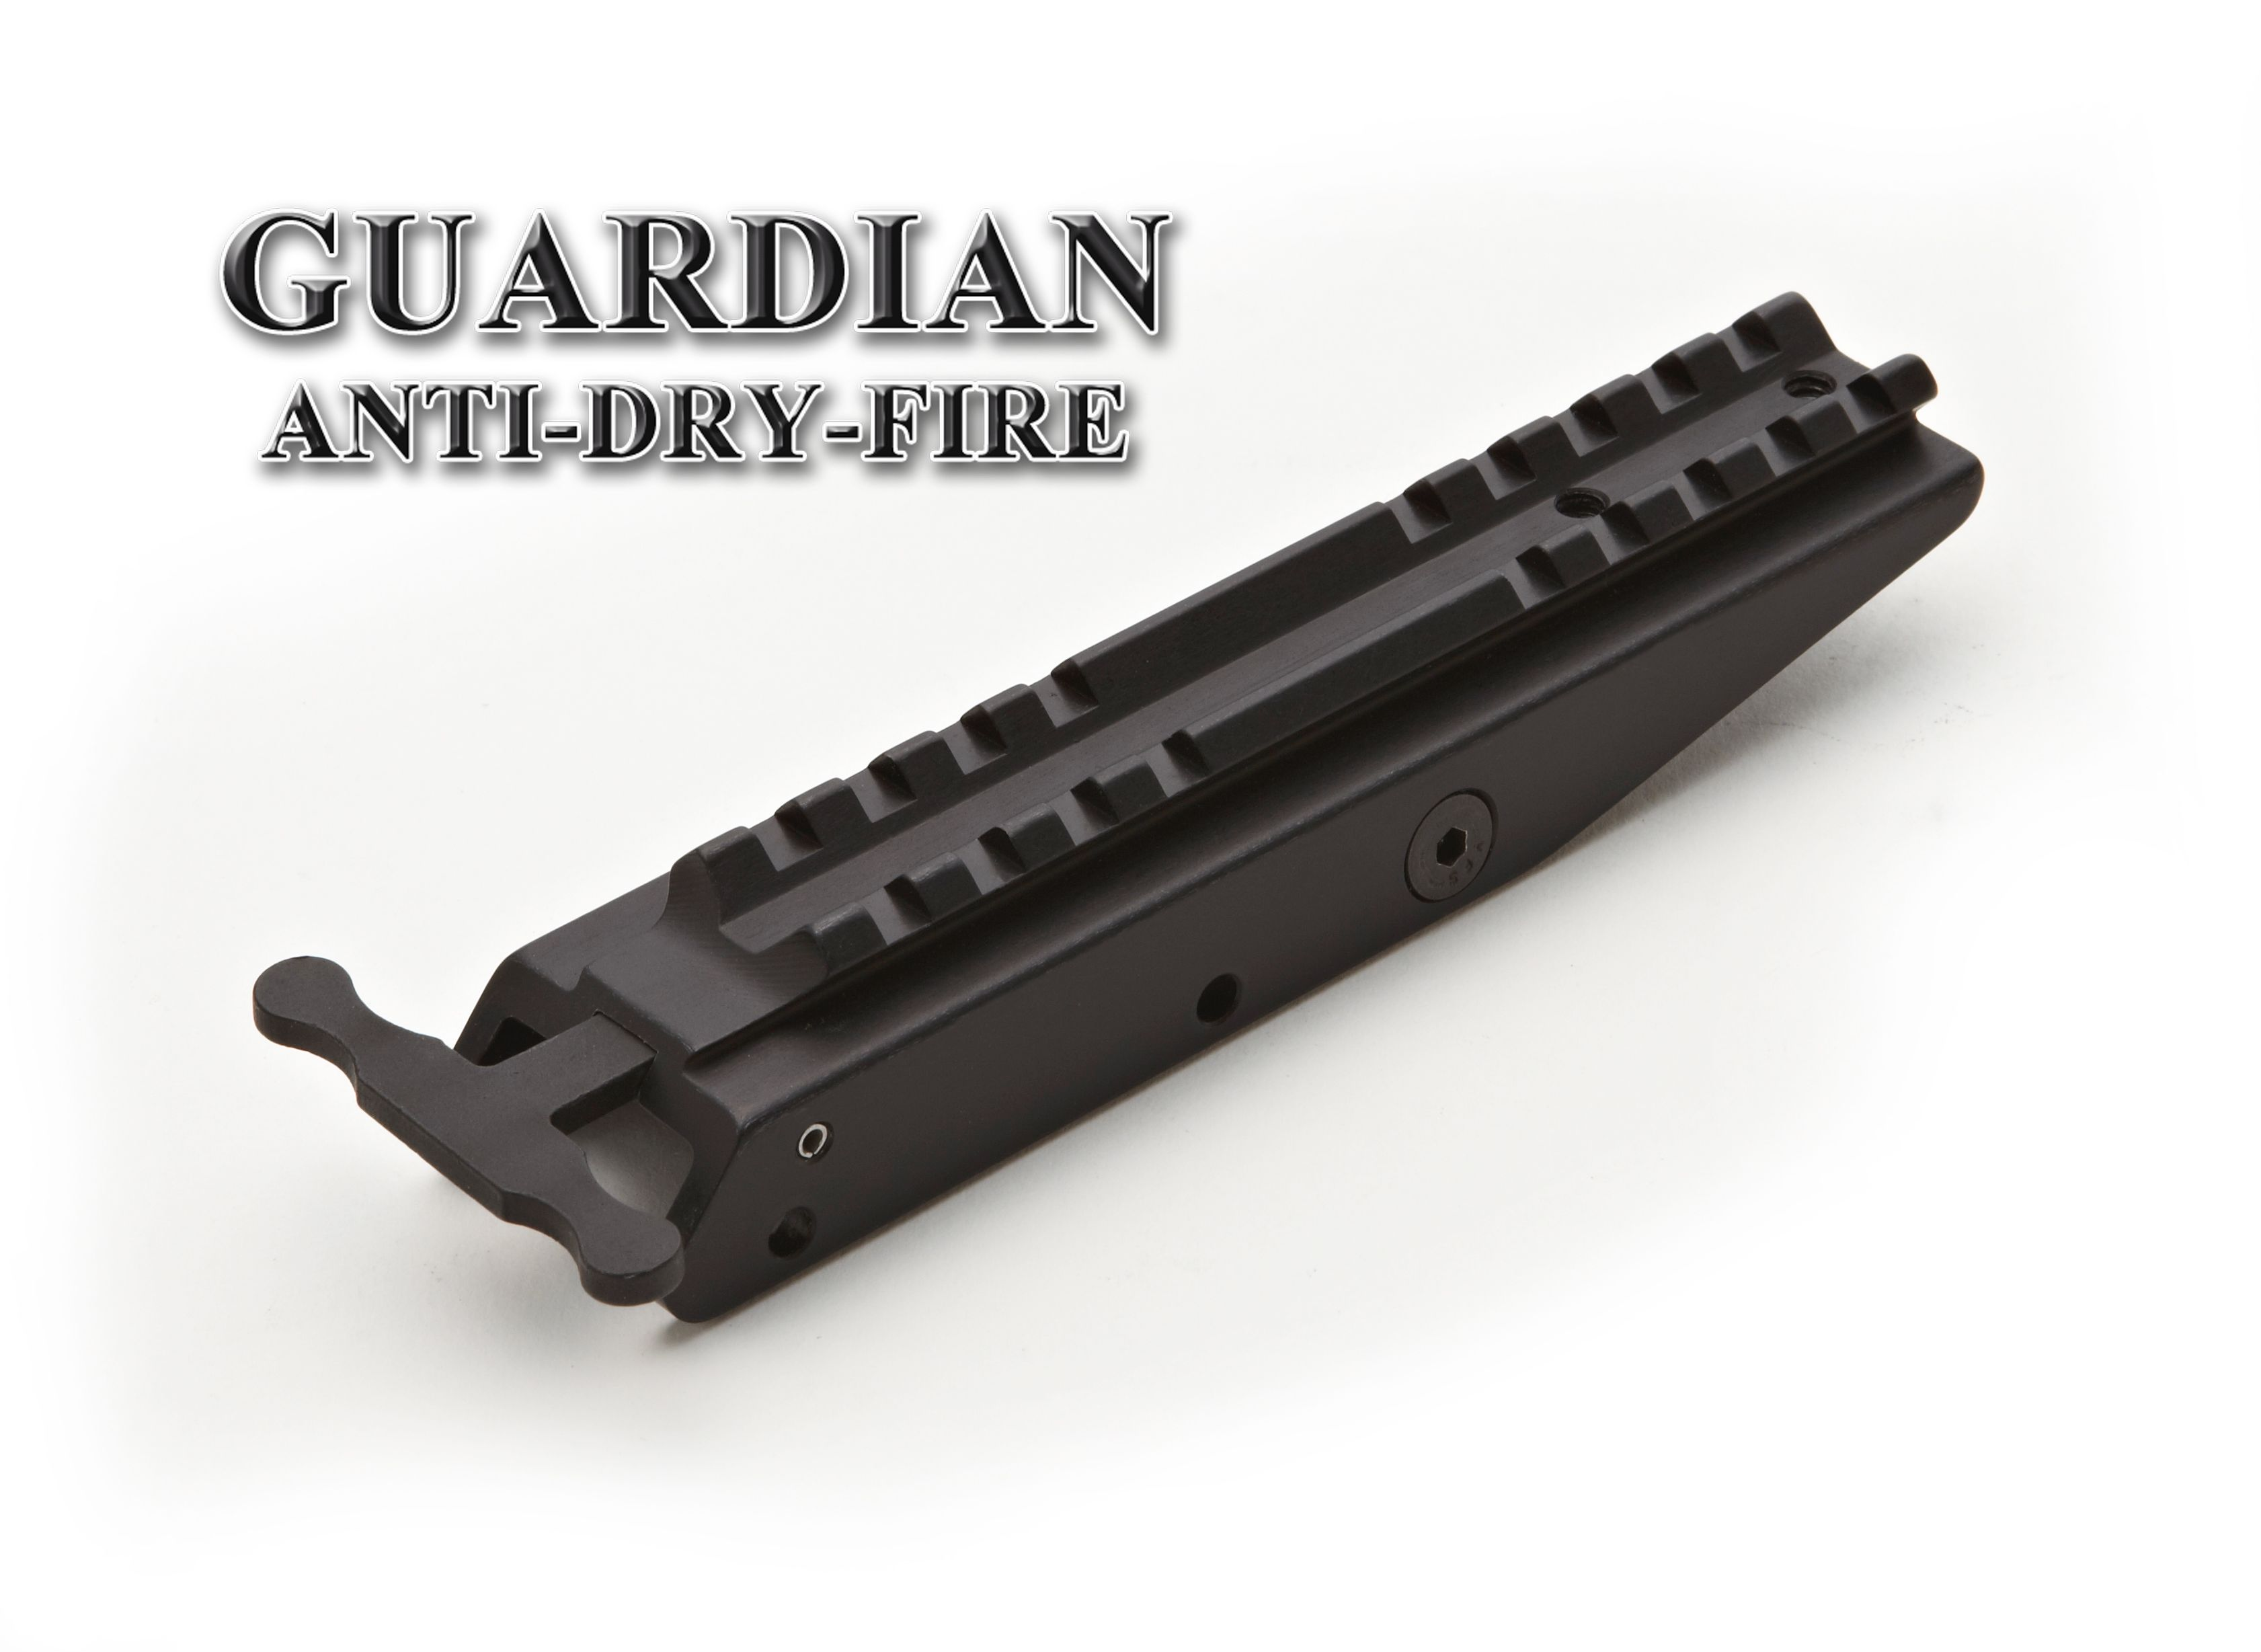 Guardian Anti-Dry Fire Scope Mount System (order 7016)